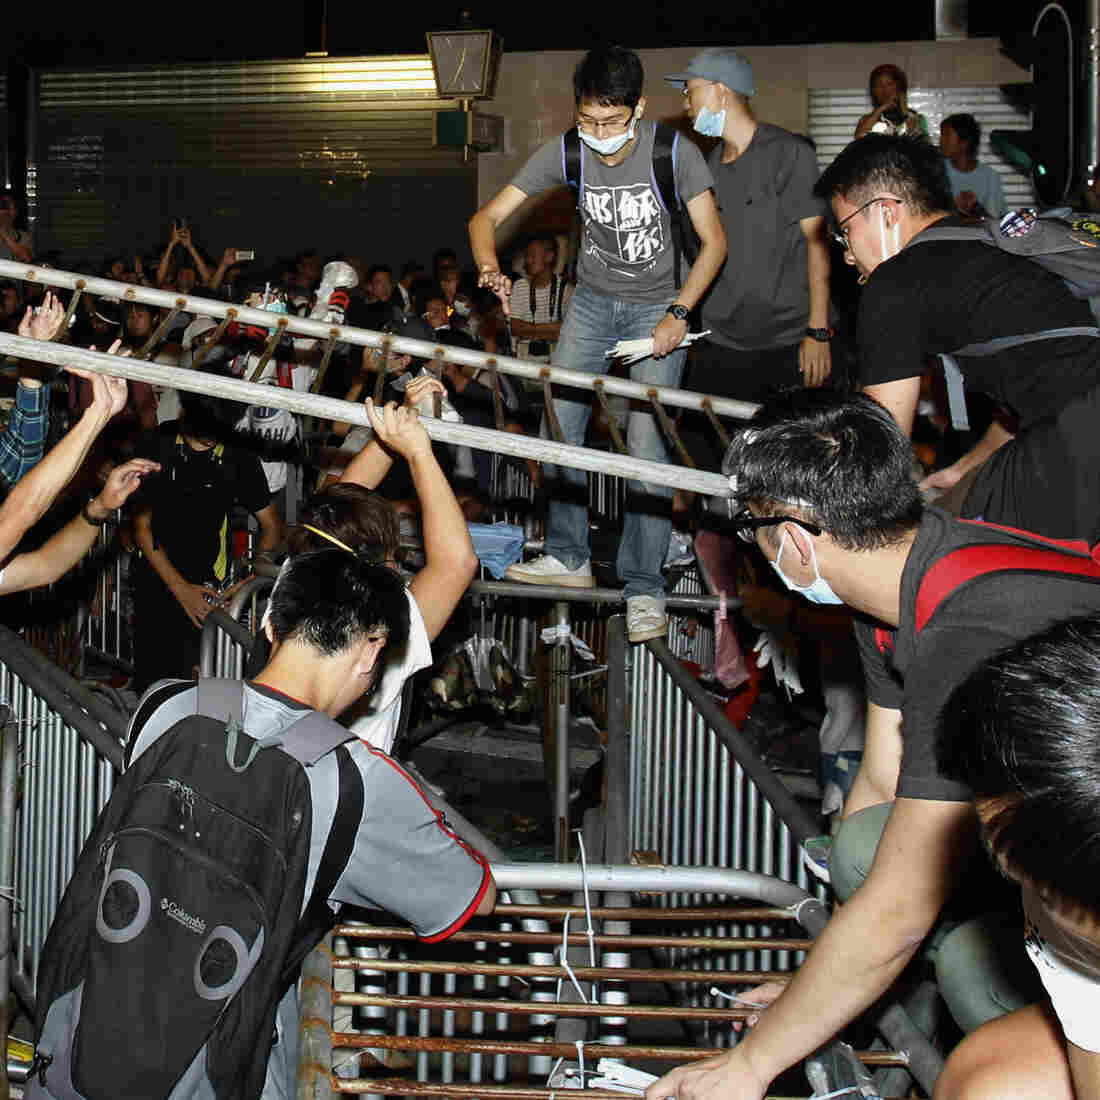 Hong Kong Activists Clash With Police, Retake Protest Site